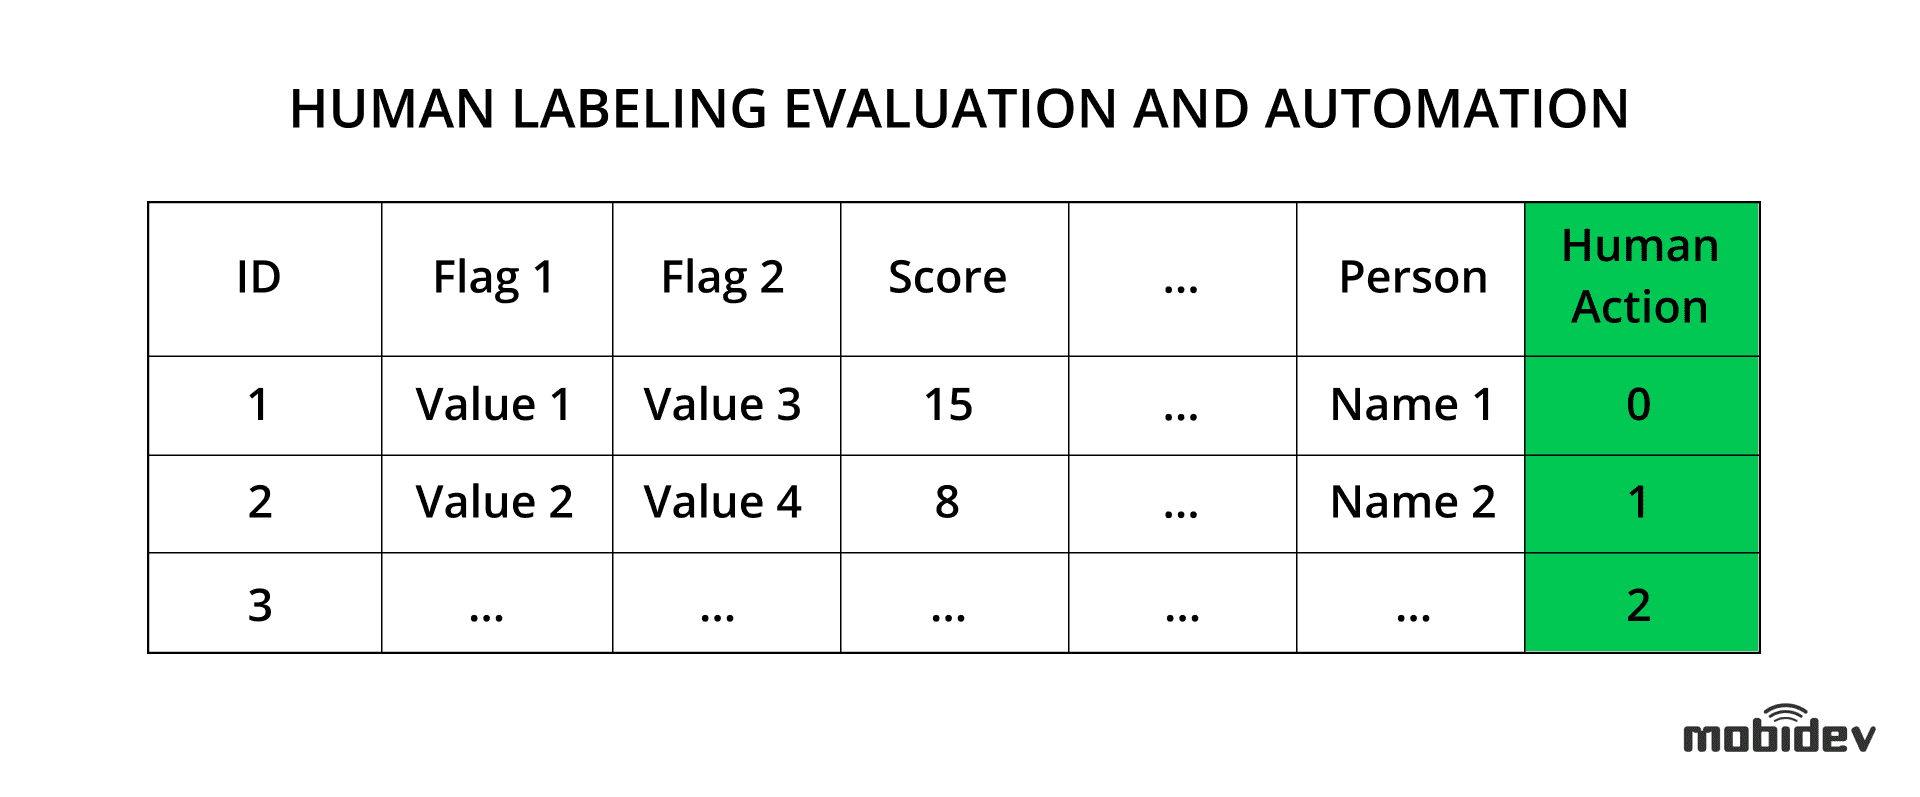 The example of human labeling evaluation and automation